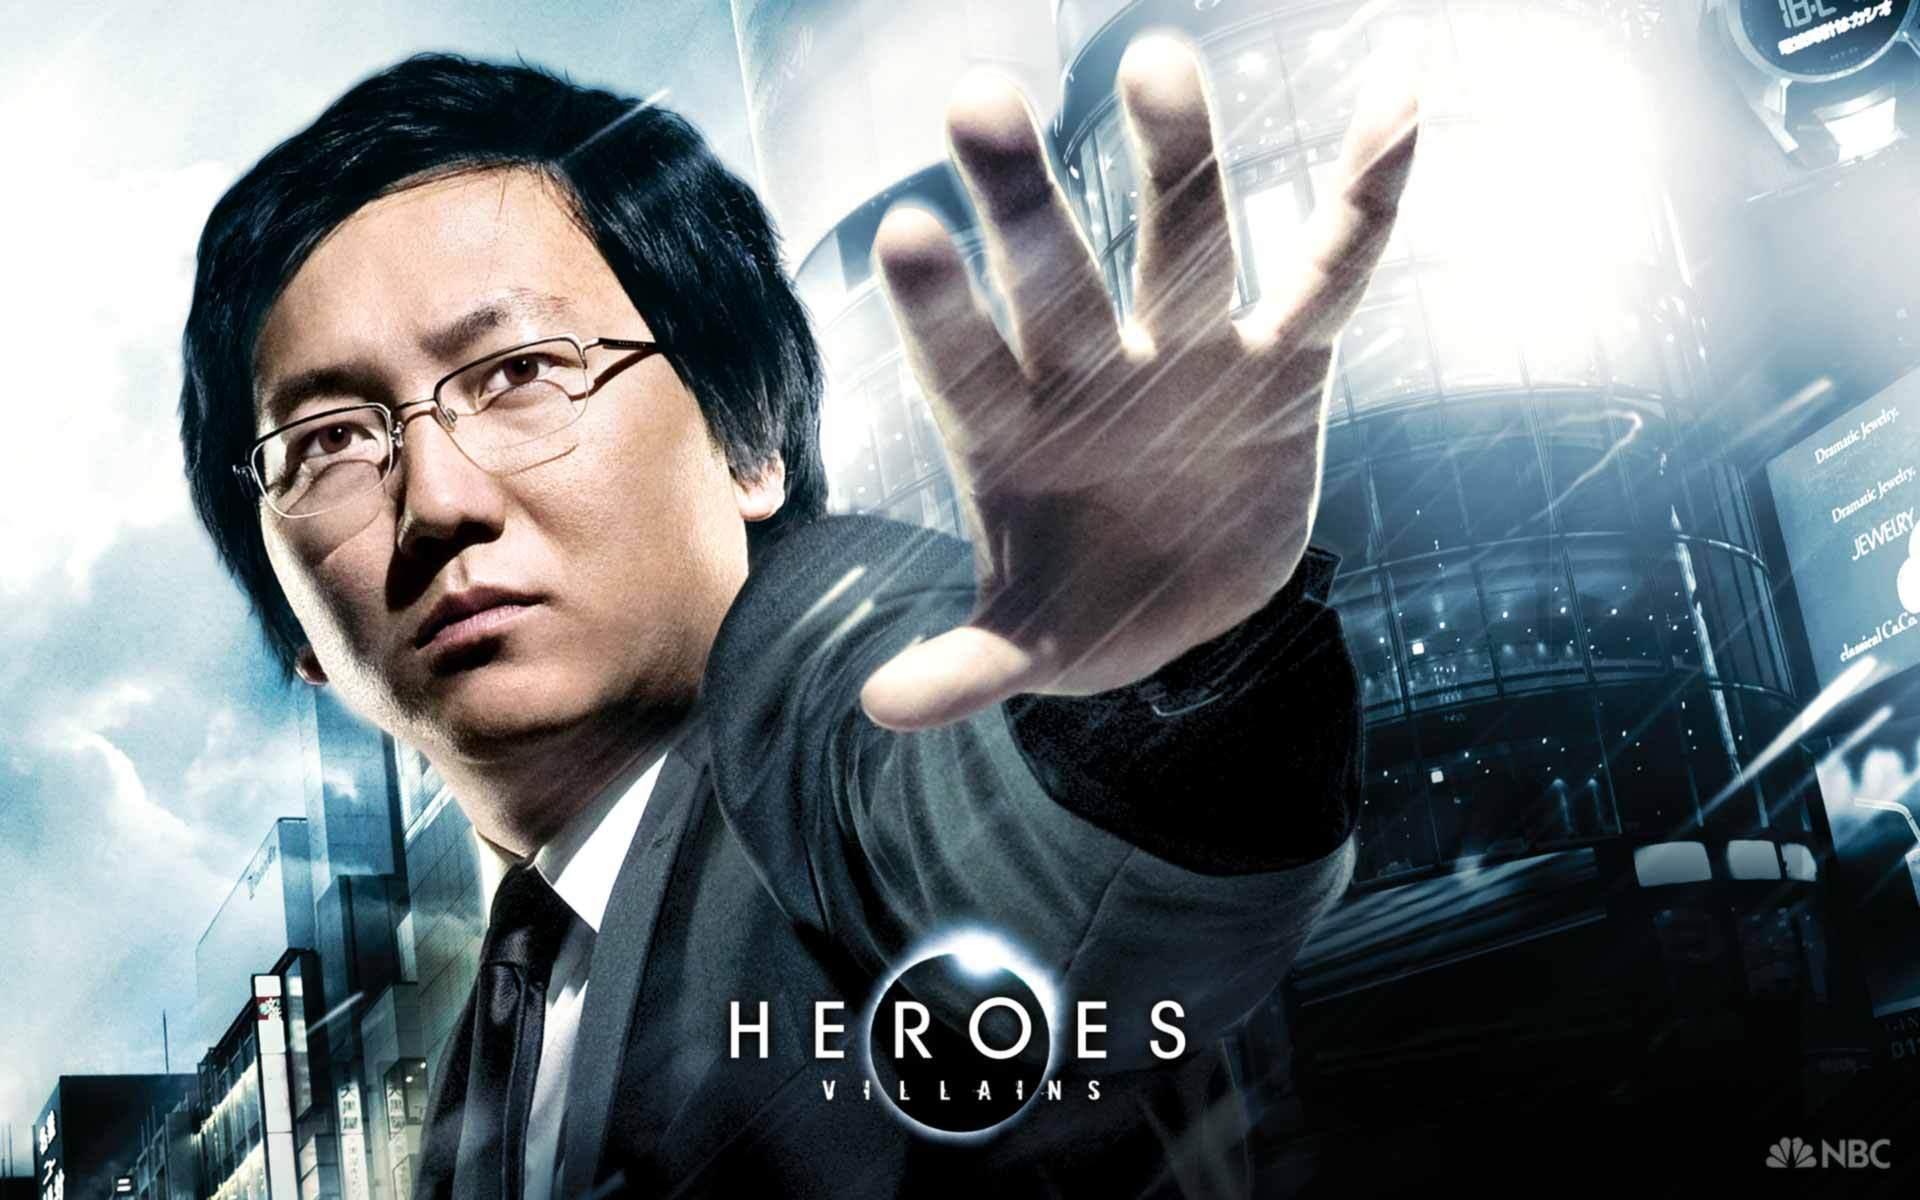 Heroes images hiro s3 wallpaper HD wallpaper and background photos 1920x1200